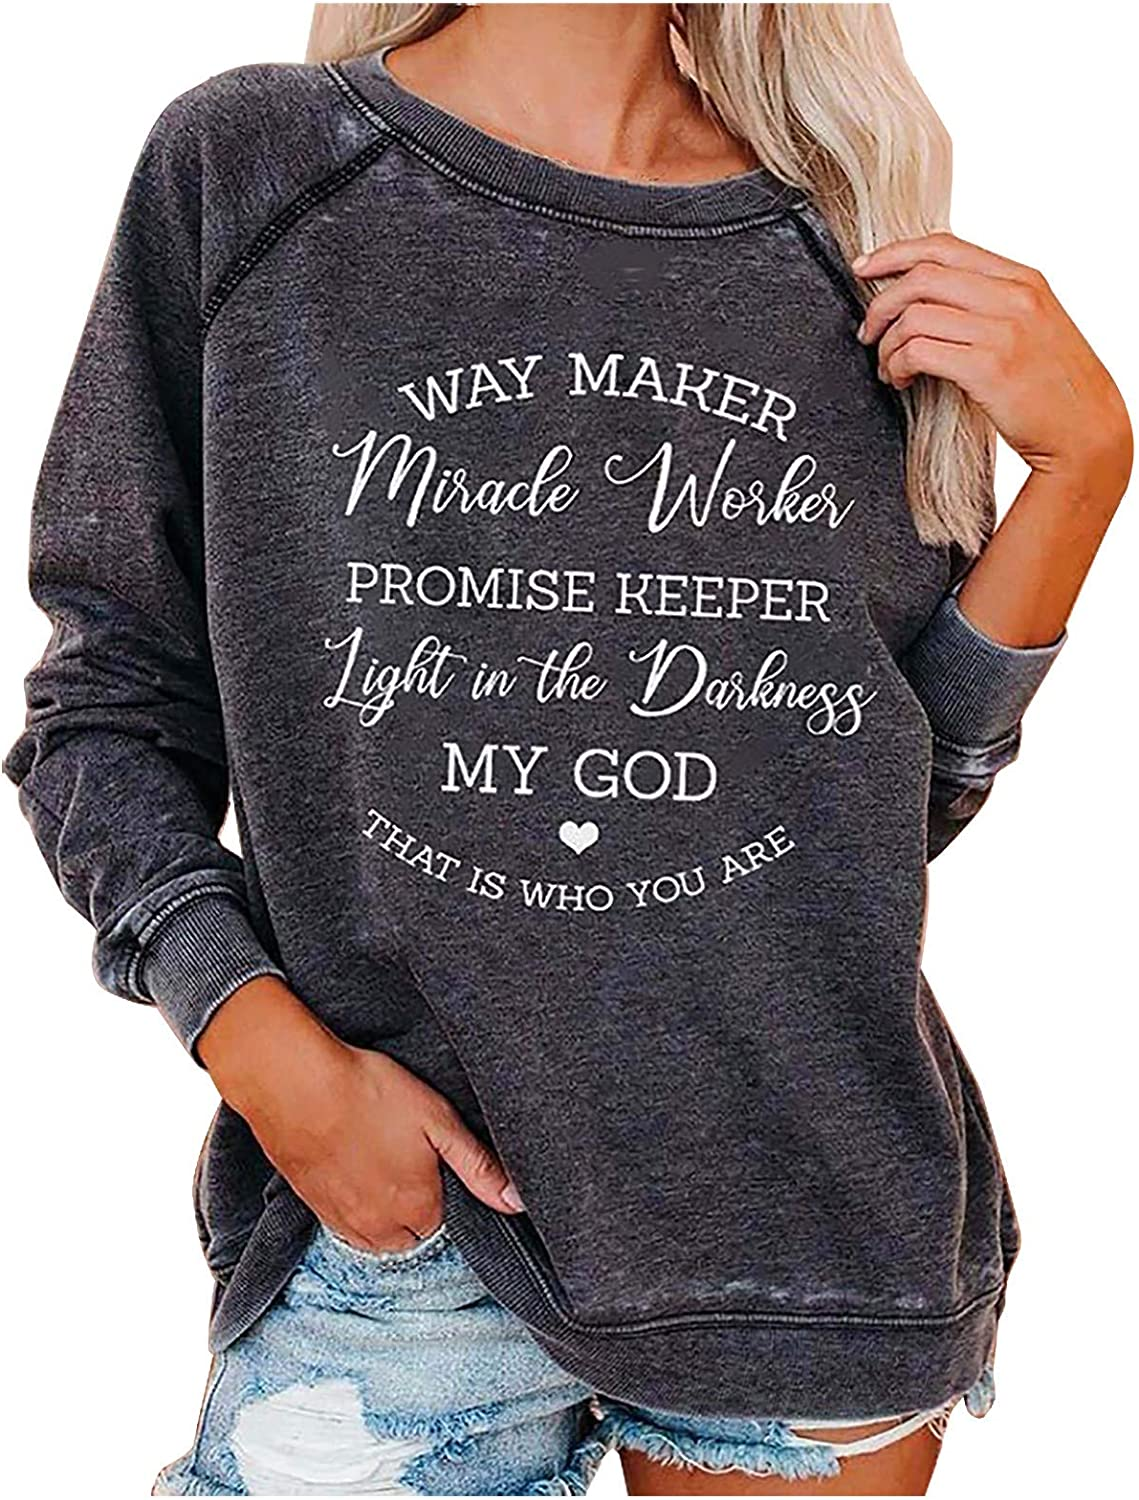 Womens Long Sleeve Tie Dye Shirts Way Maker Miracle Worker Letter Printed Casual Novelty Pullover Crewneck Tops